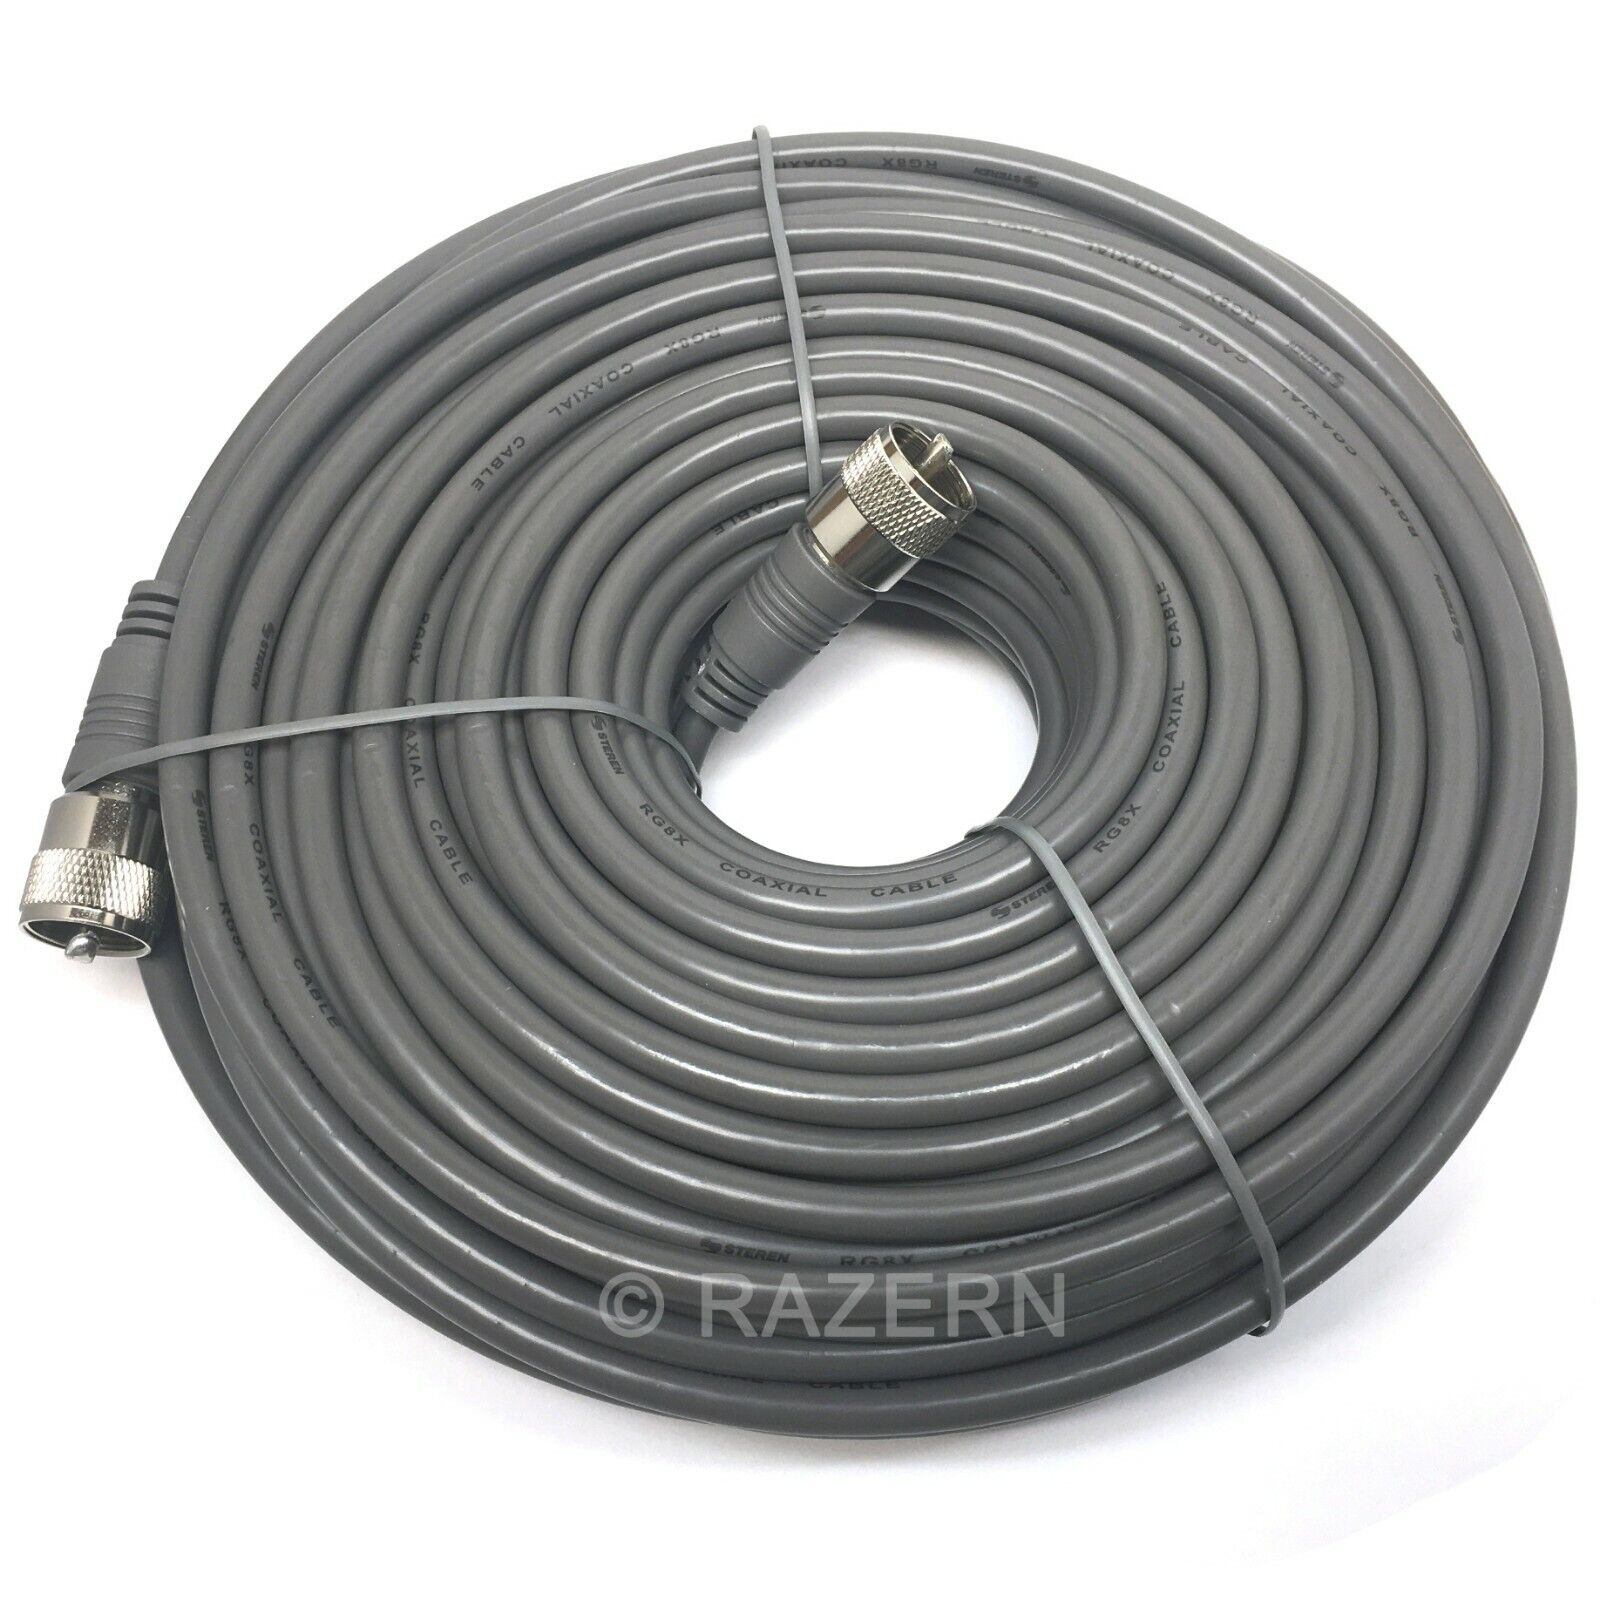 Steren 100 ft Gray RG8X Mini-8 Coax Coaxial PL259 UHF Ham CB Radio Antenna Cable. Available Now for 49.95